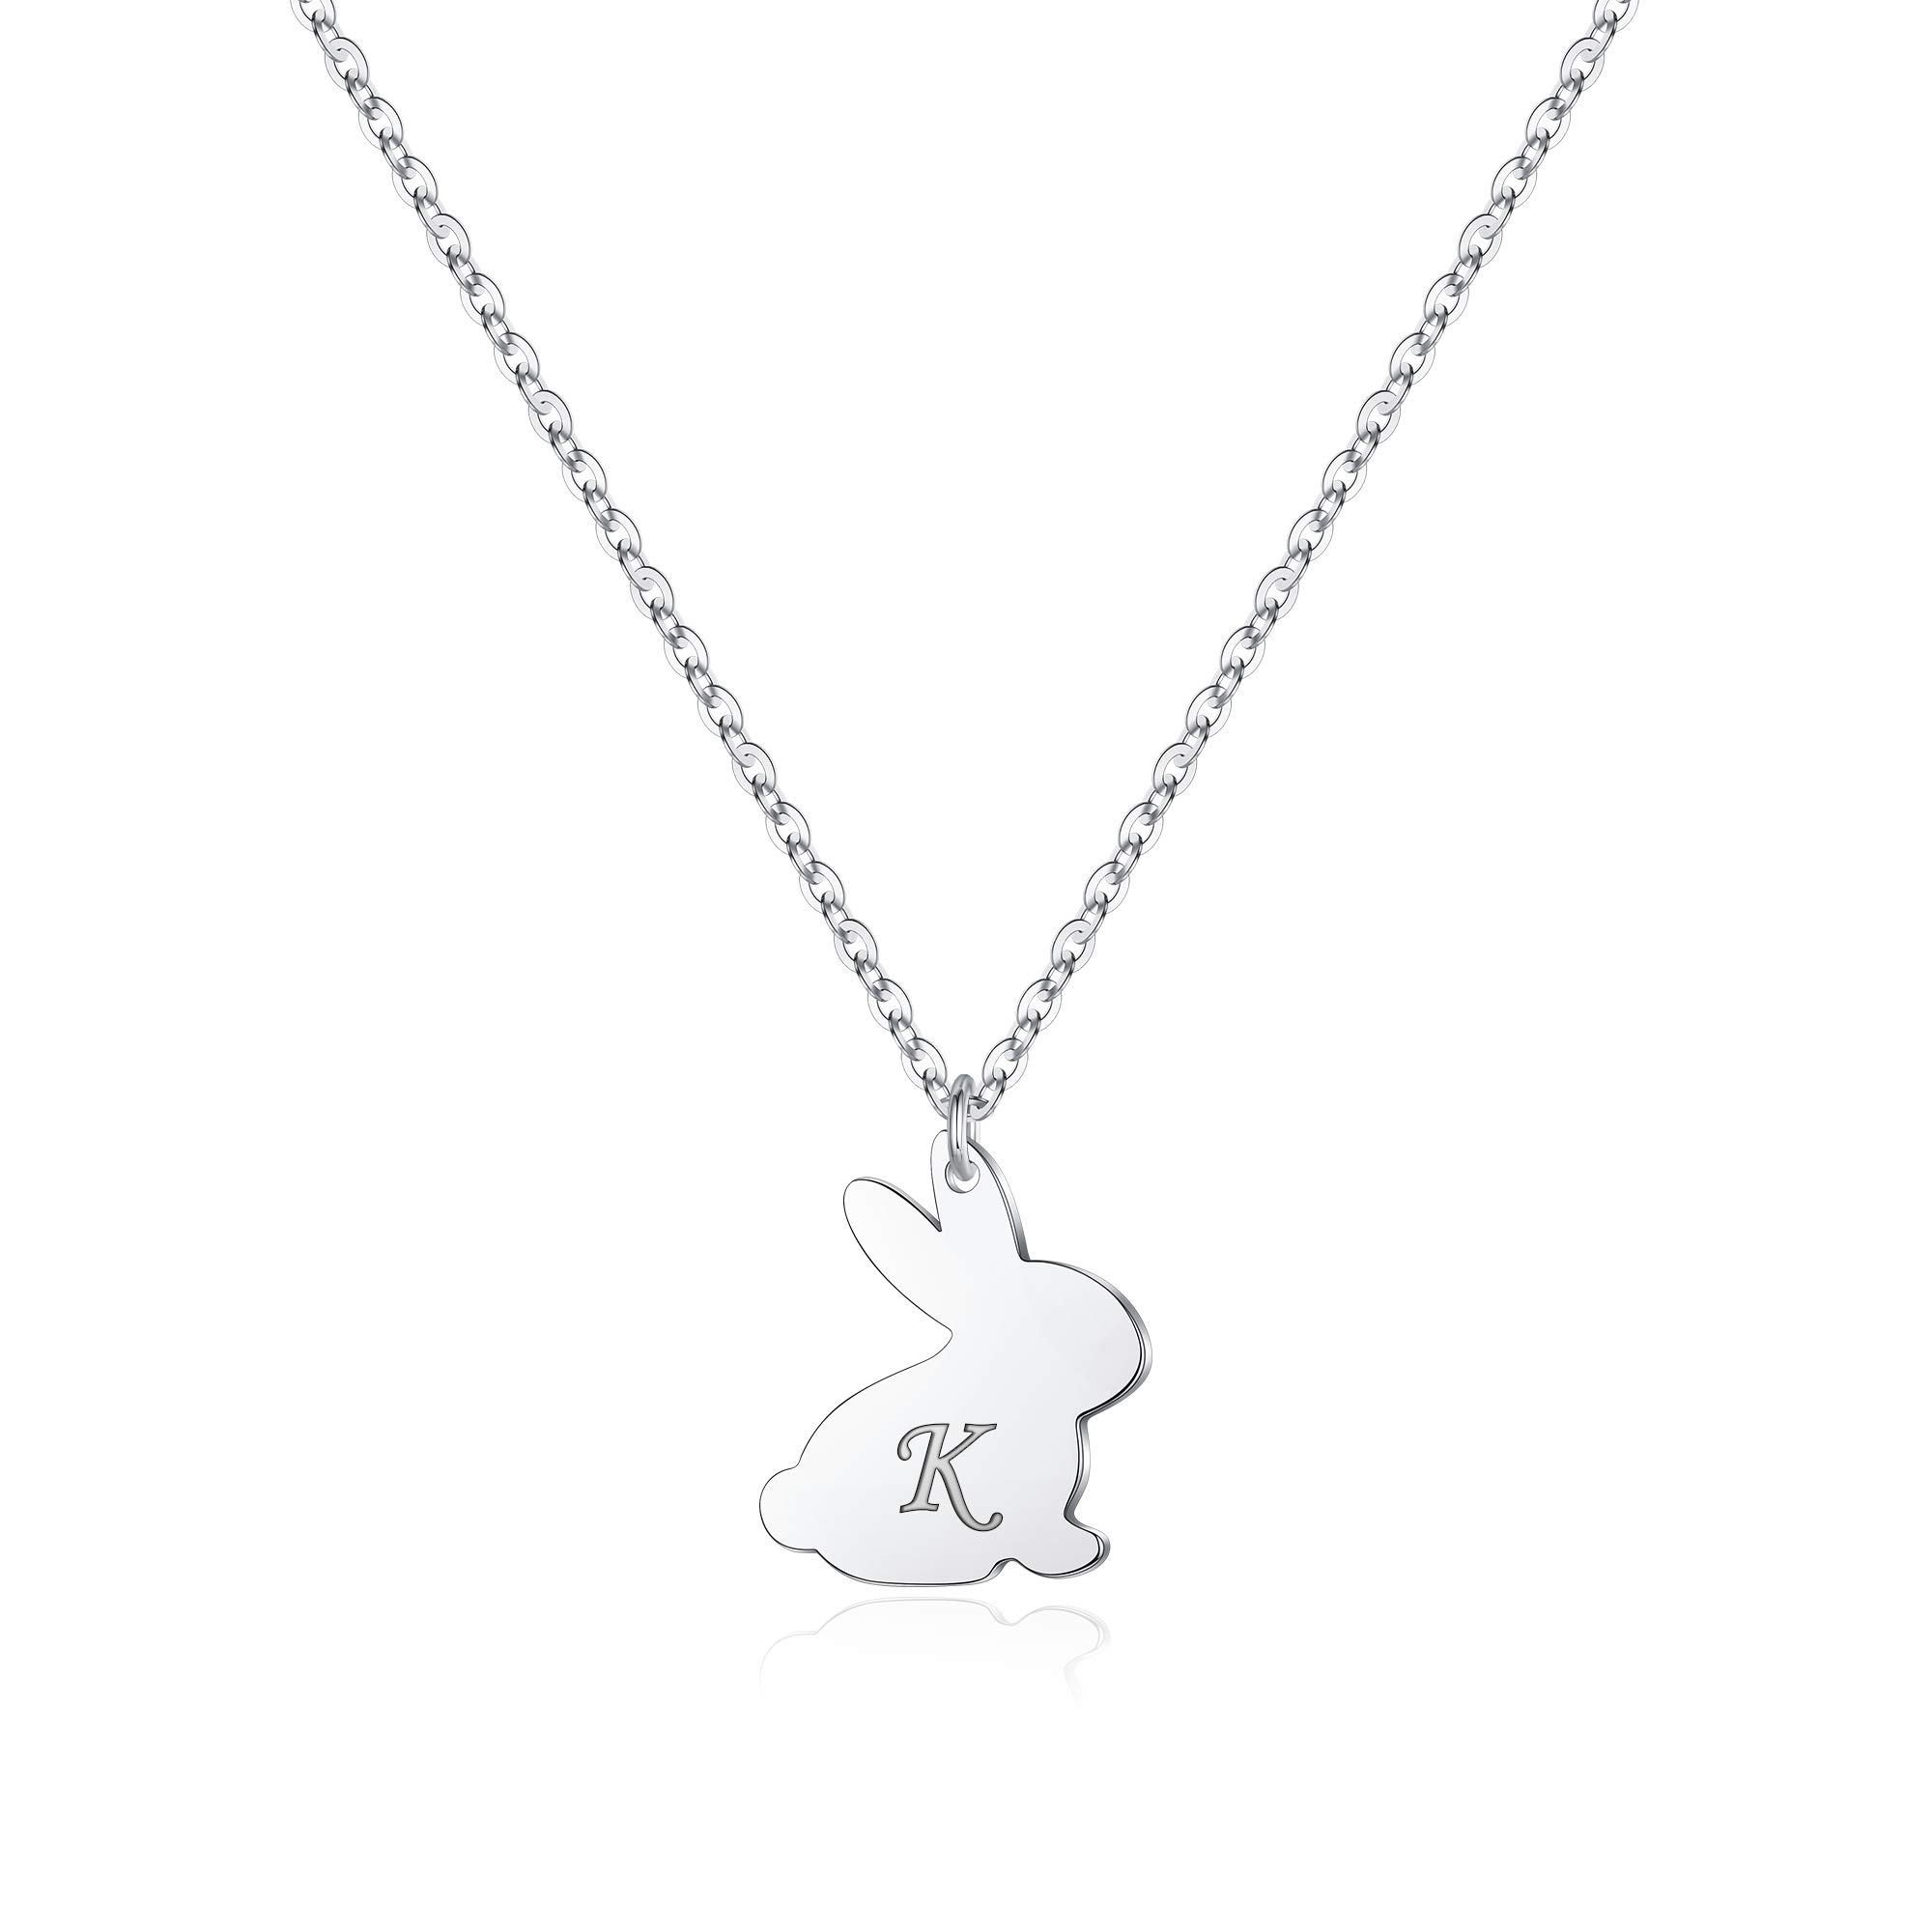 Yoosteel Easter Bunny Gifts for Kids, 14K Rose Gold Plated Dainty Heart Initial Necklace Engraved Love Heart Cute Animal Bunny Easter Gifts for Kids Girls Jewelry Daughter Toddlers